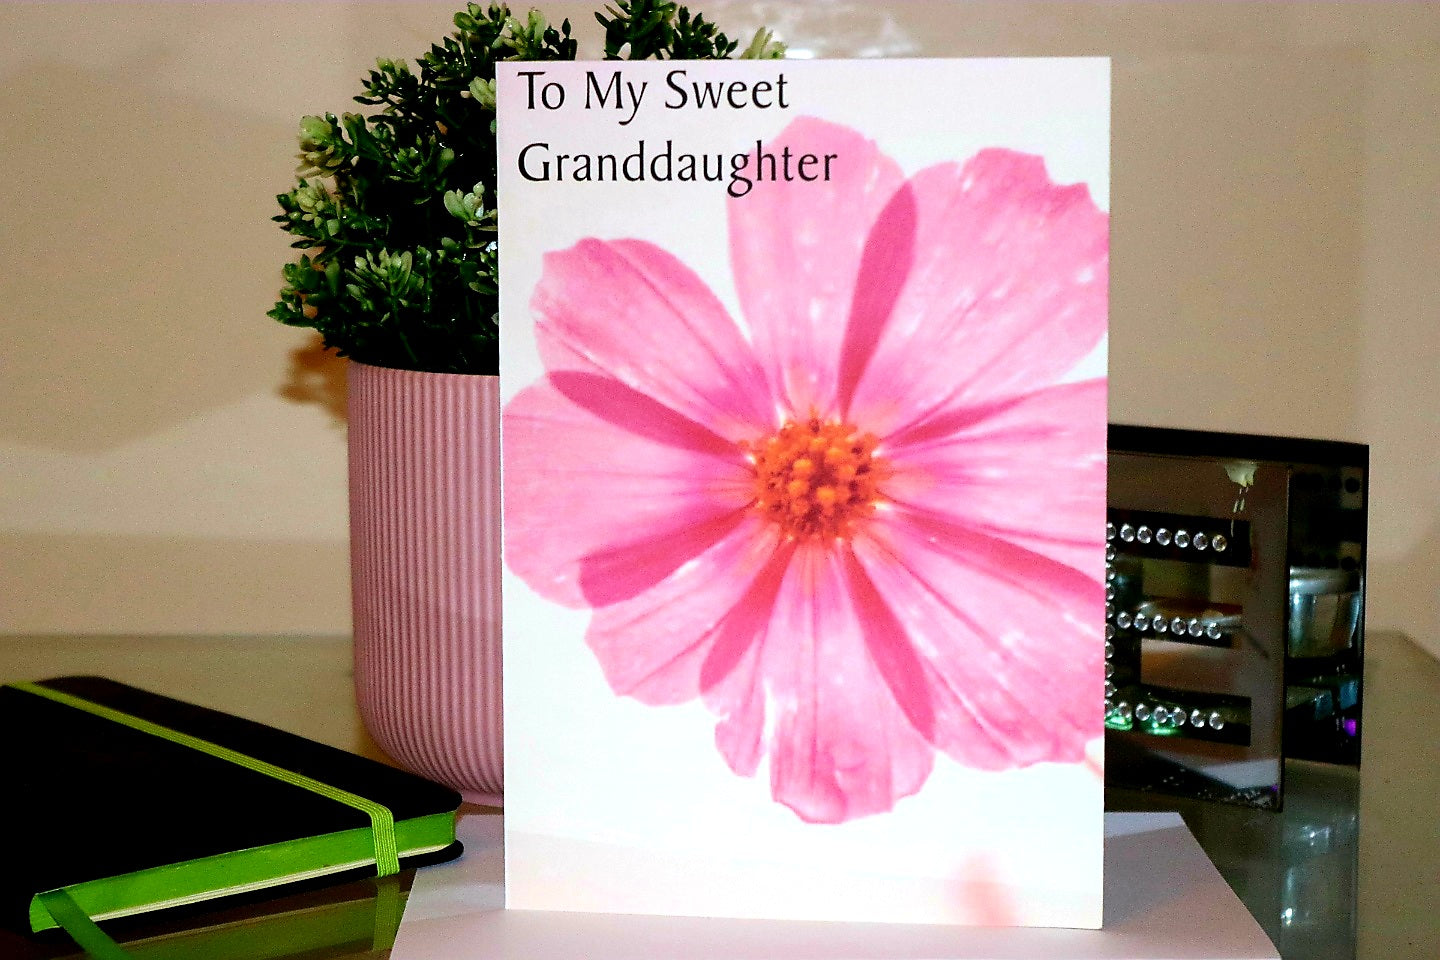 To My Sweet Granddaughter - Divine Poetry